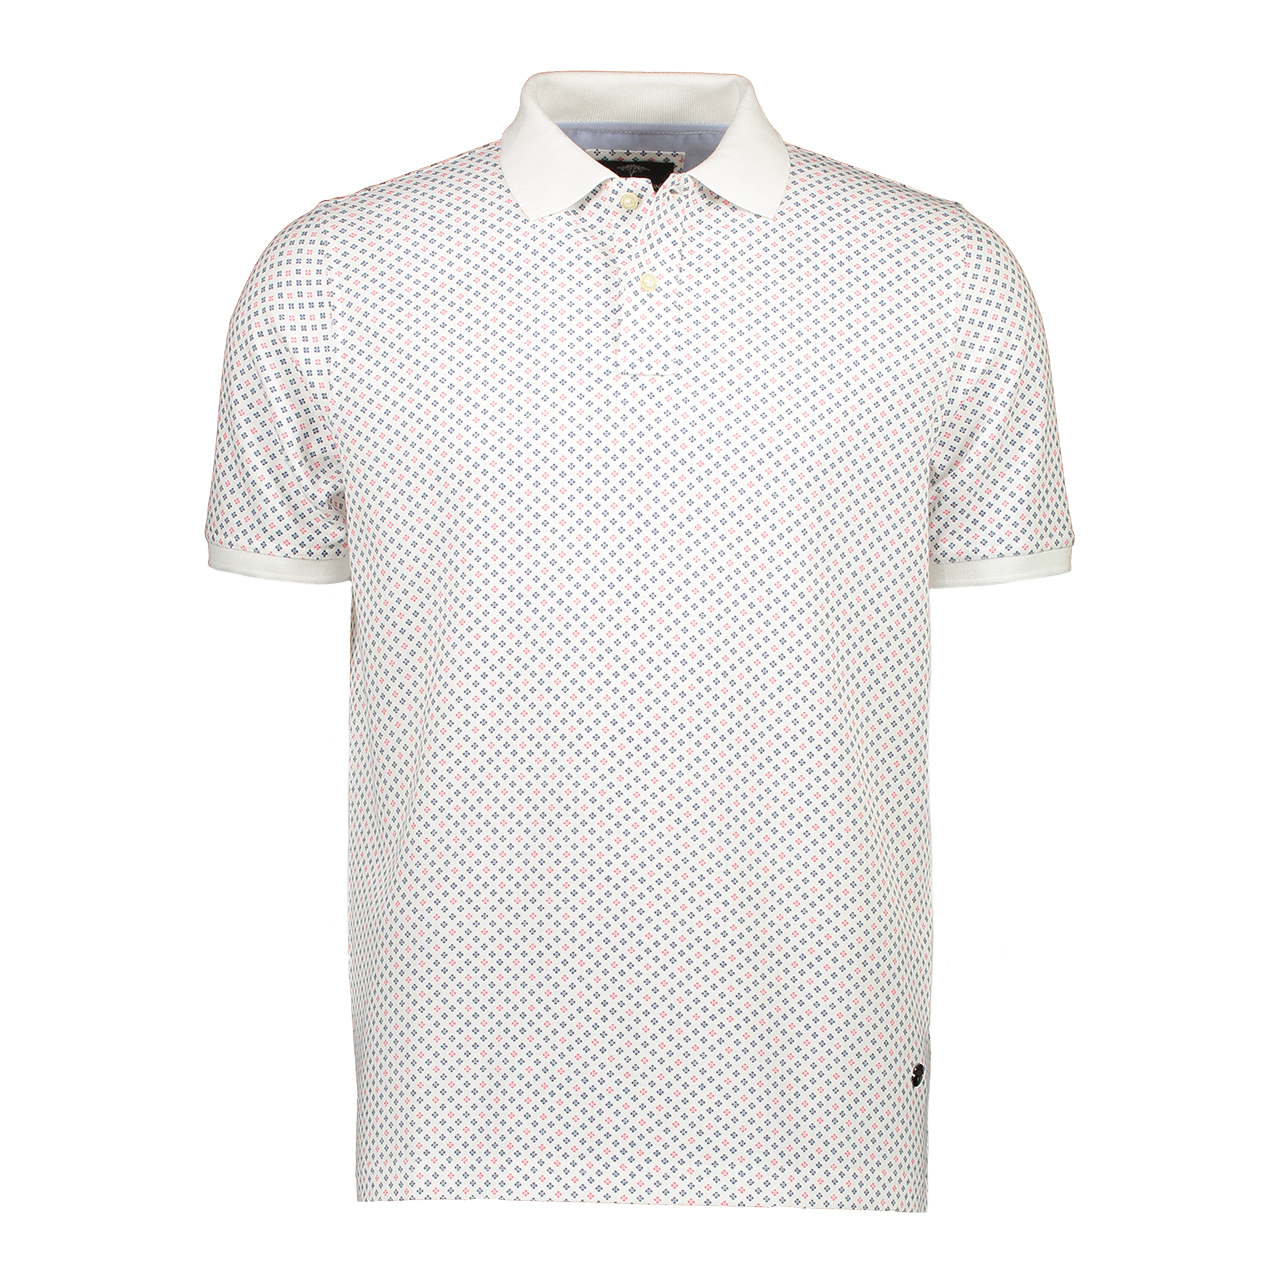 Fynch Hatton Polo